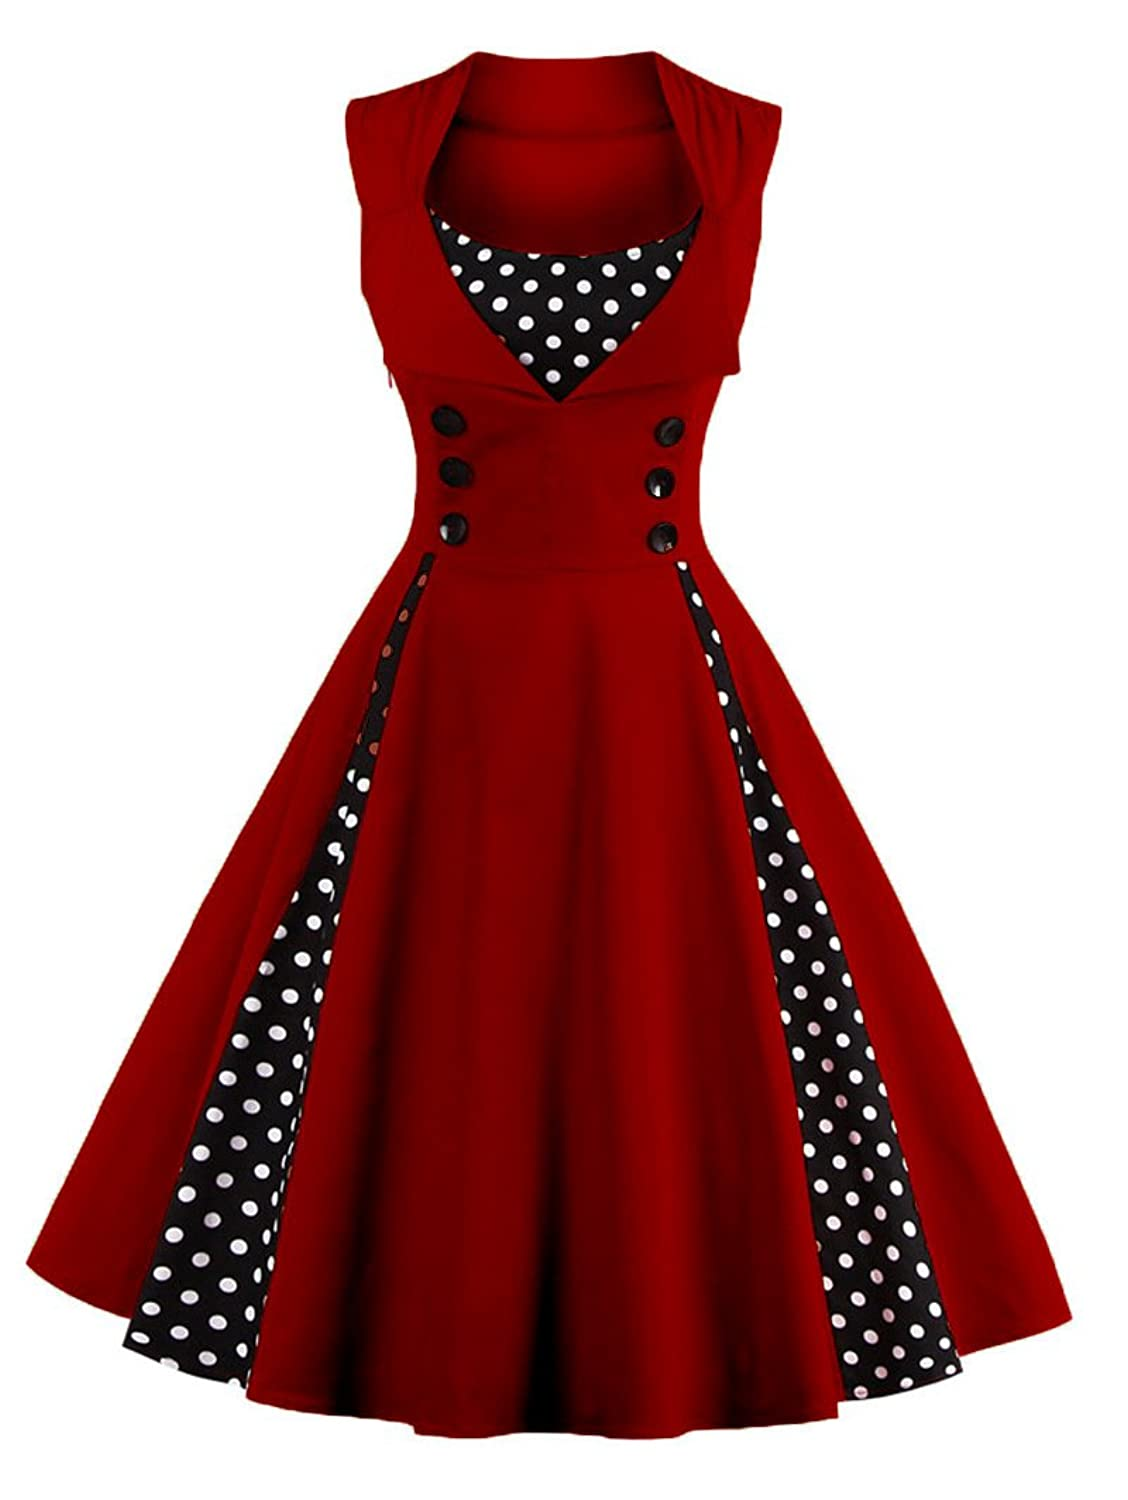 1940s Pinup Dresses for Sale LUNAJANY Womens Rockabilly Vintage Polka Dot Pin up Swing Cocktail Party Dress $24.59 AT vintagedancer.com